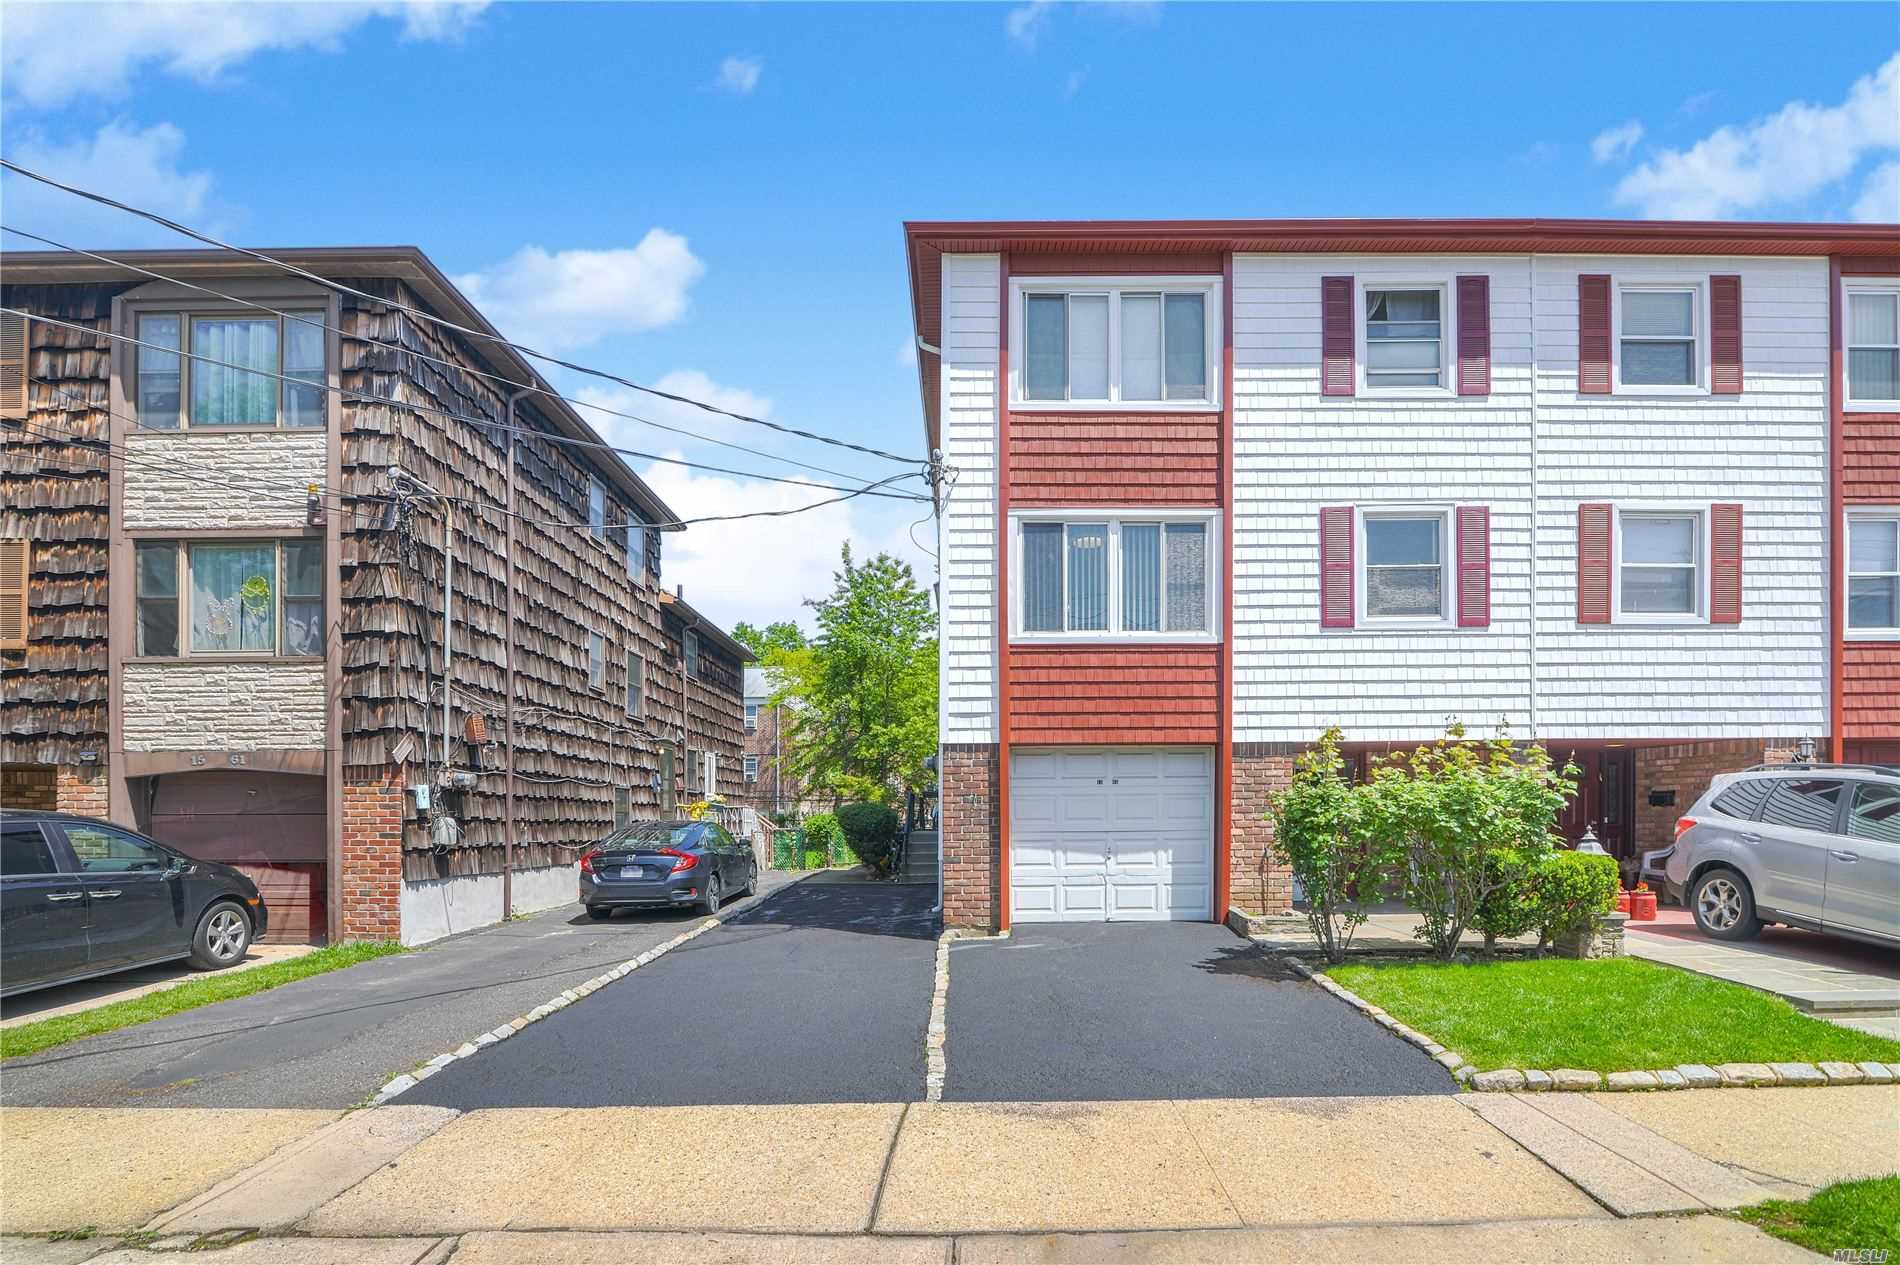 Property for sale at 15-65 209th Street, Bayside NY 11360, Bayside,  New York 11360